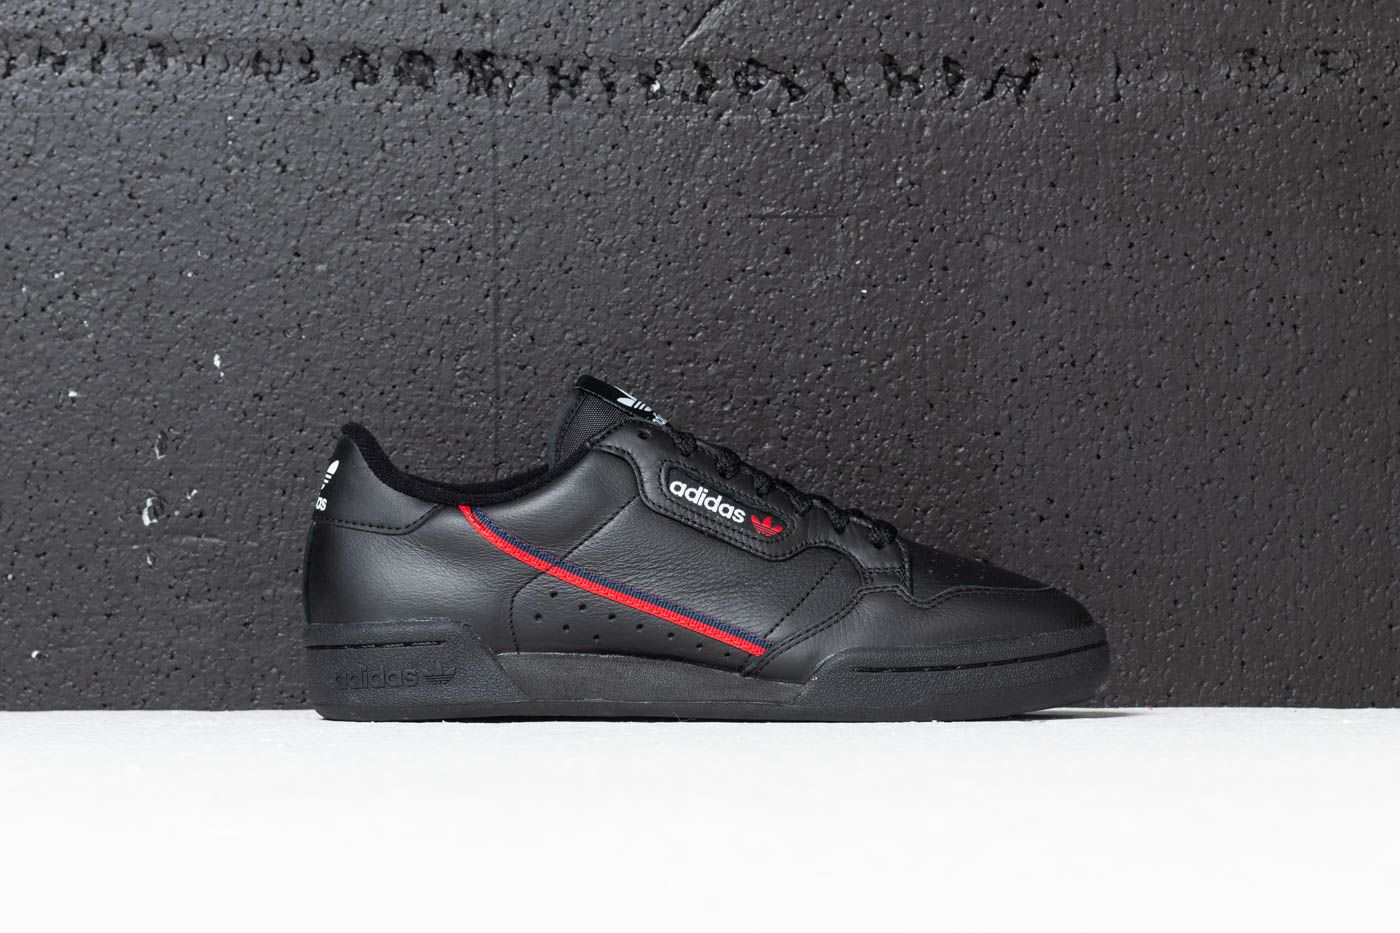 low cost 8cc07 3b8b5 adidas Continental 80 Core Black  Scarlet  Collegiate Navy at a great price  99 €